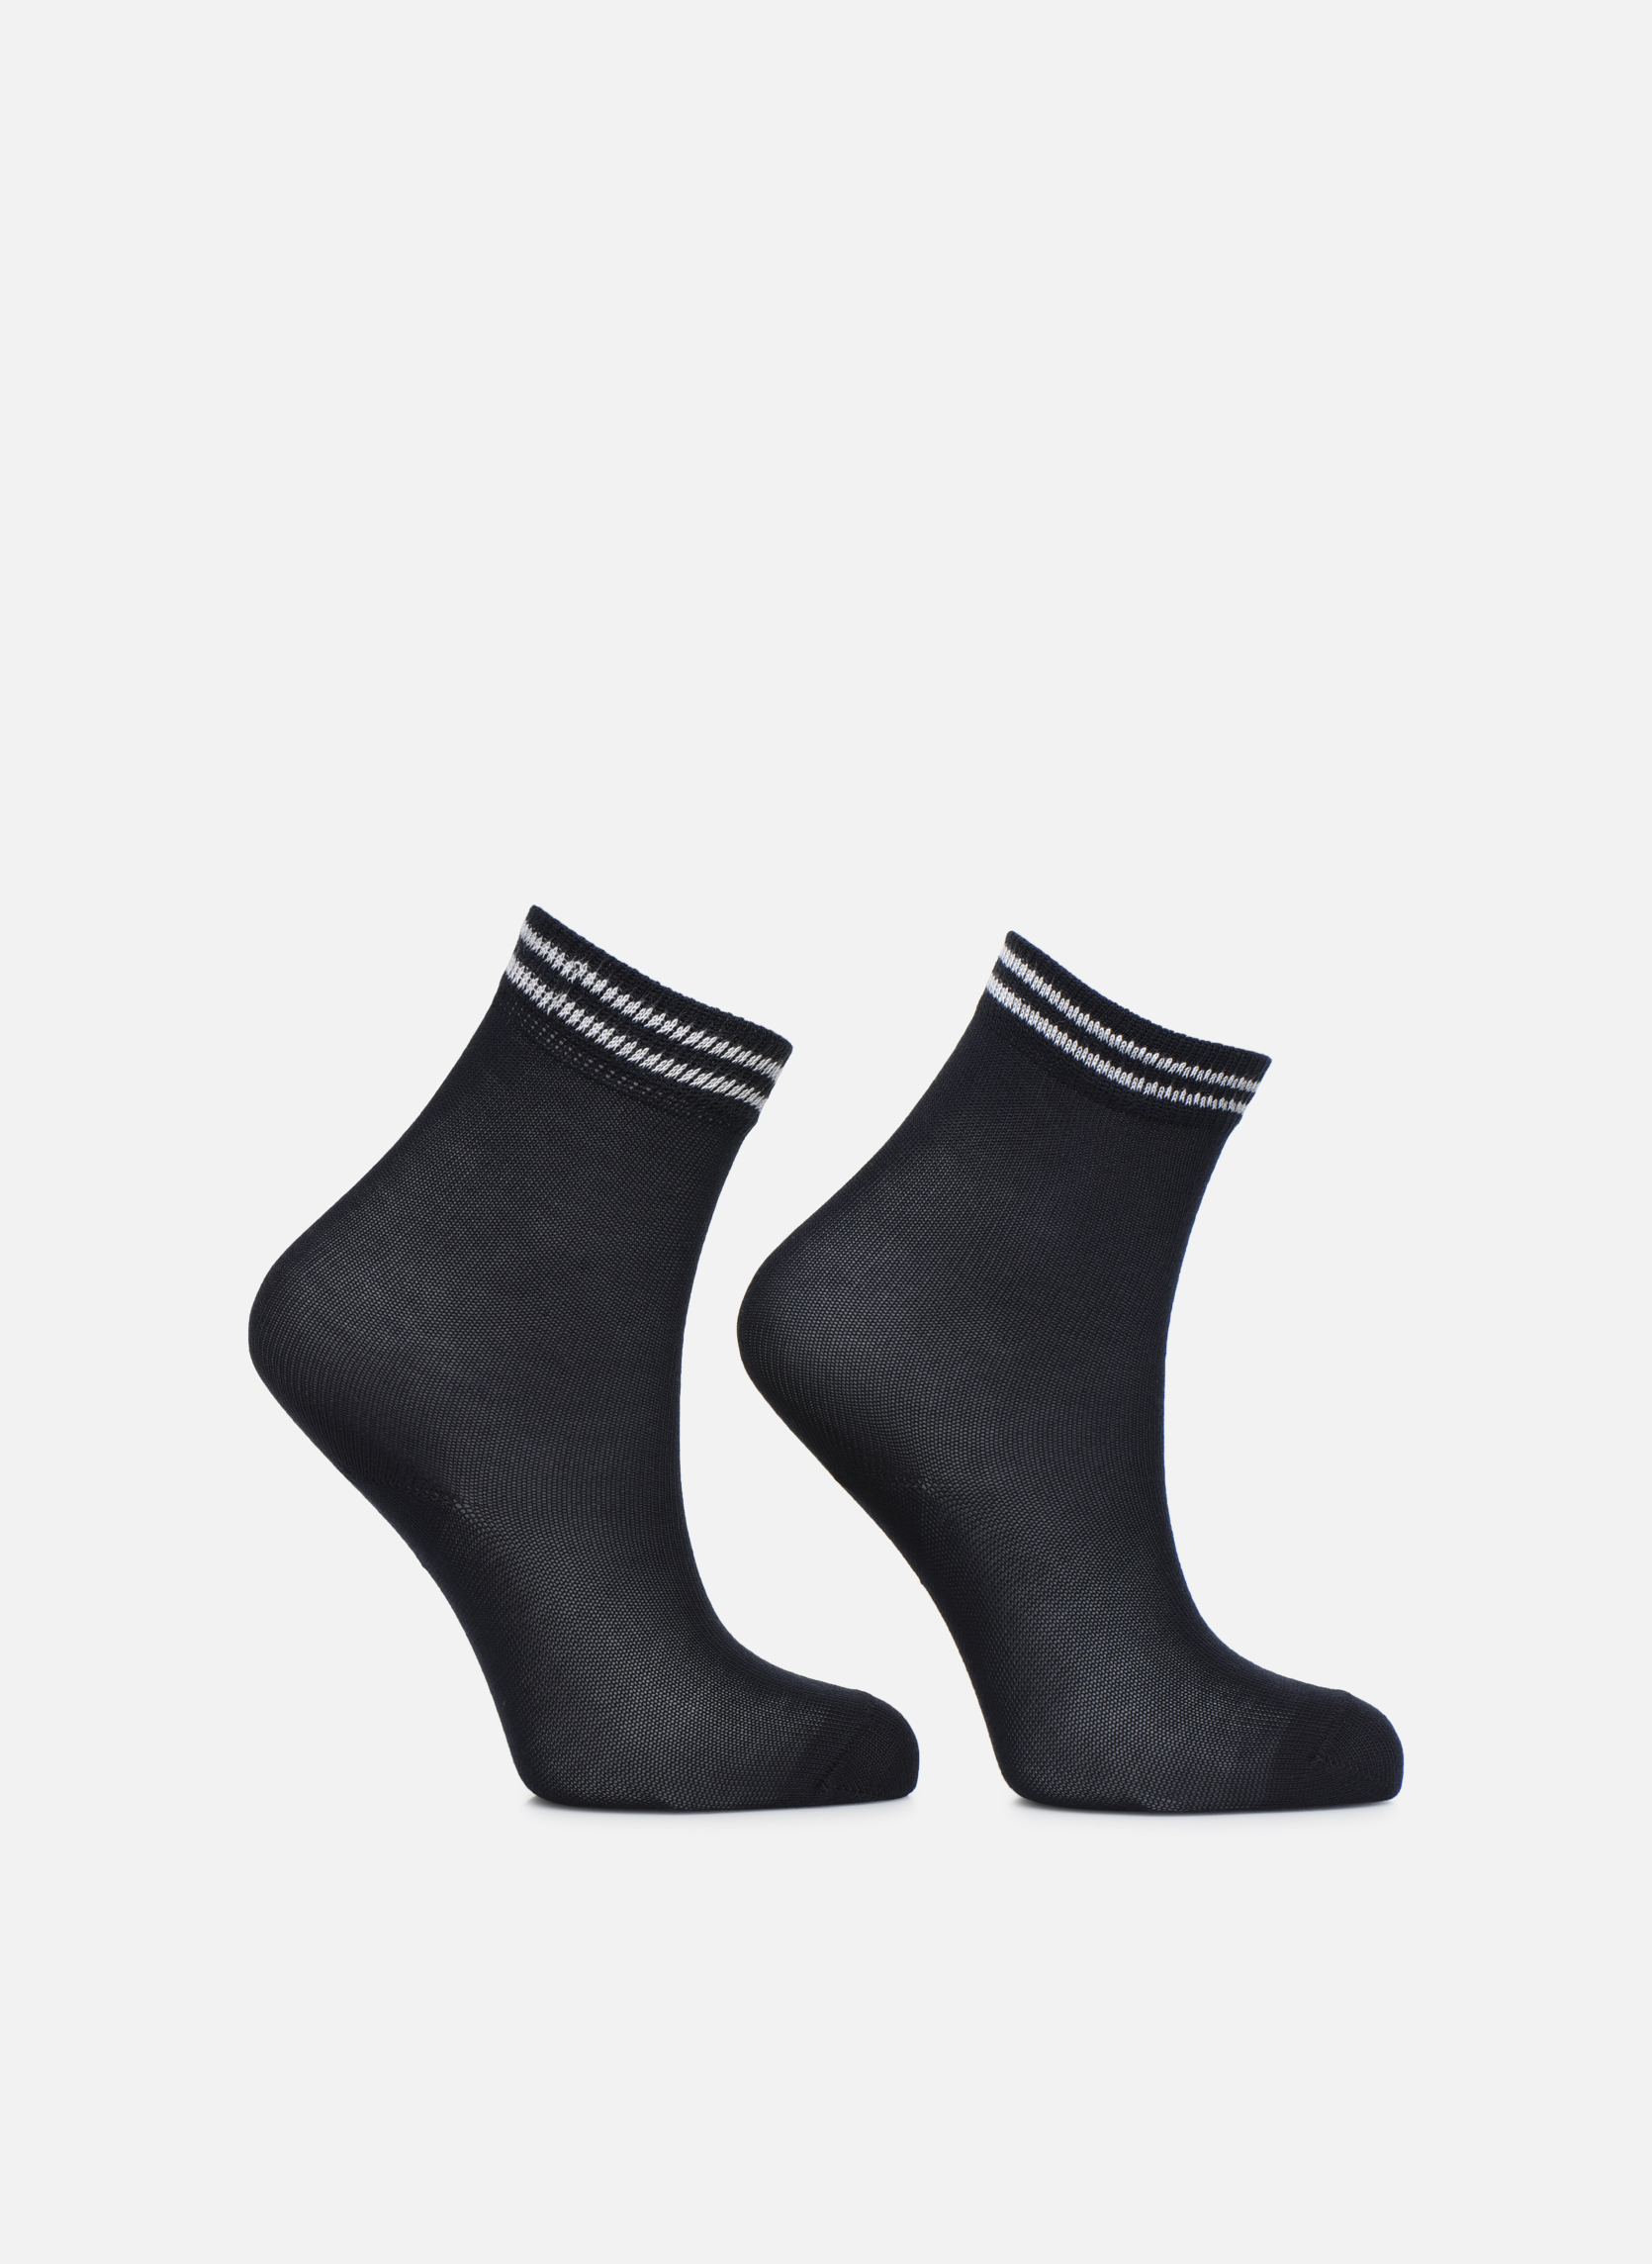 Falke Chaussettes Enfant Coton Pack de 2 Friends SO